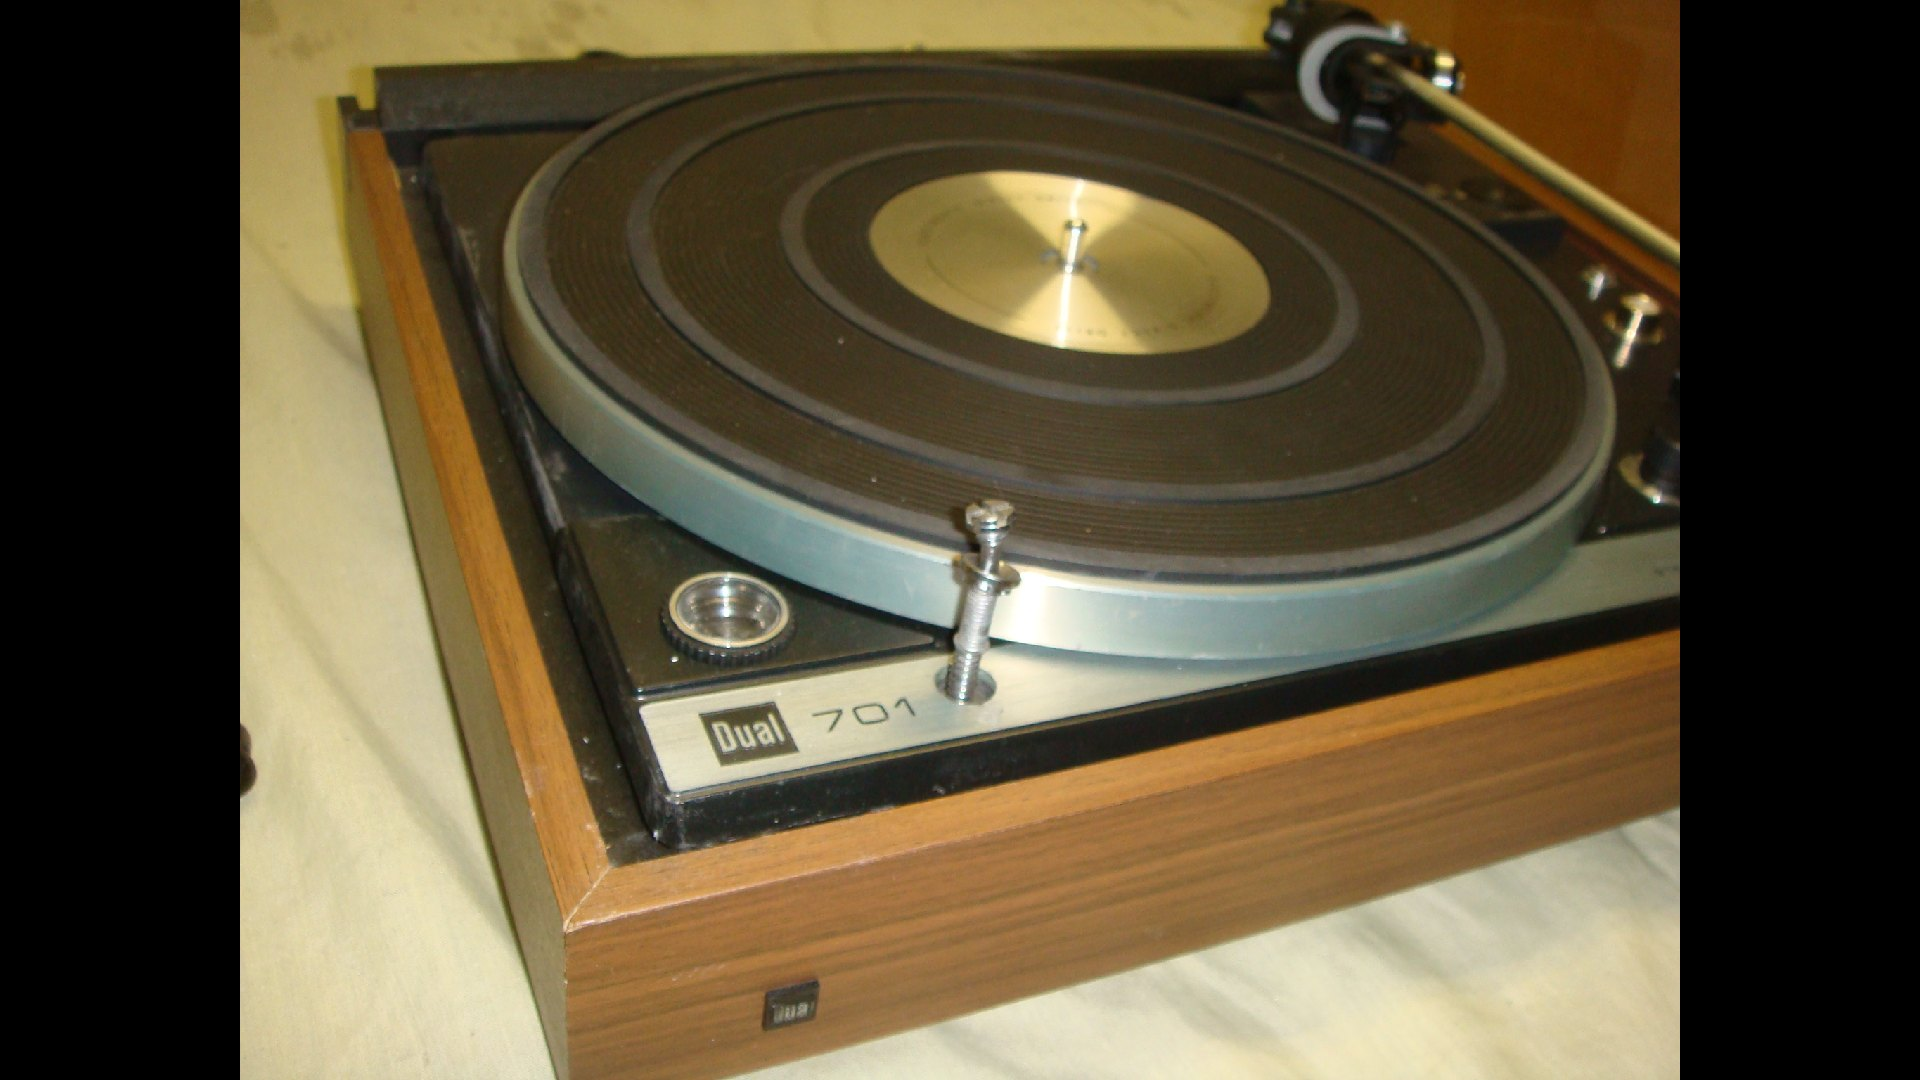 Dual 701 Turntable for Sale http://www.ebay.com/itm/DUAL-701-T550-TURNTABLE-FOR-PARTS-REPAIR-READ-/400493953347